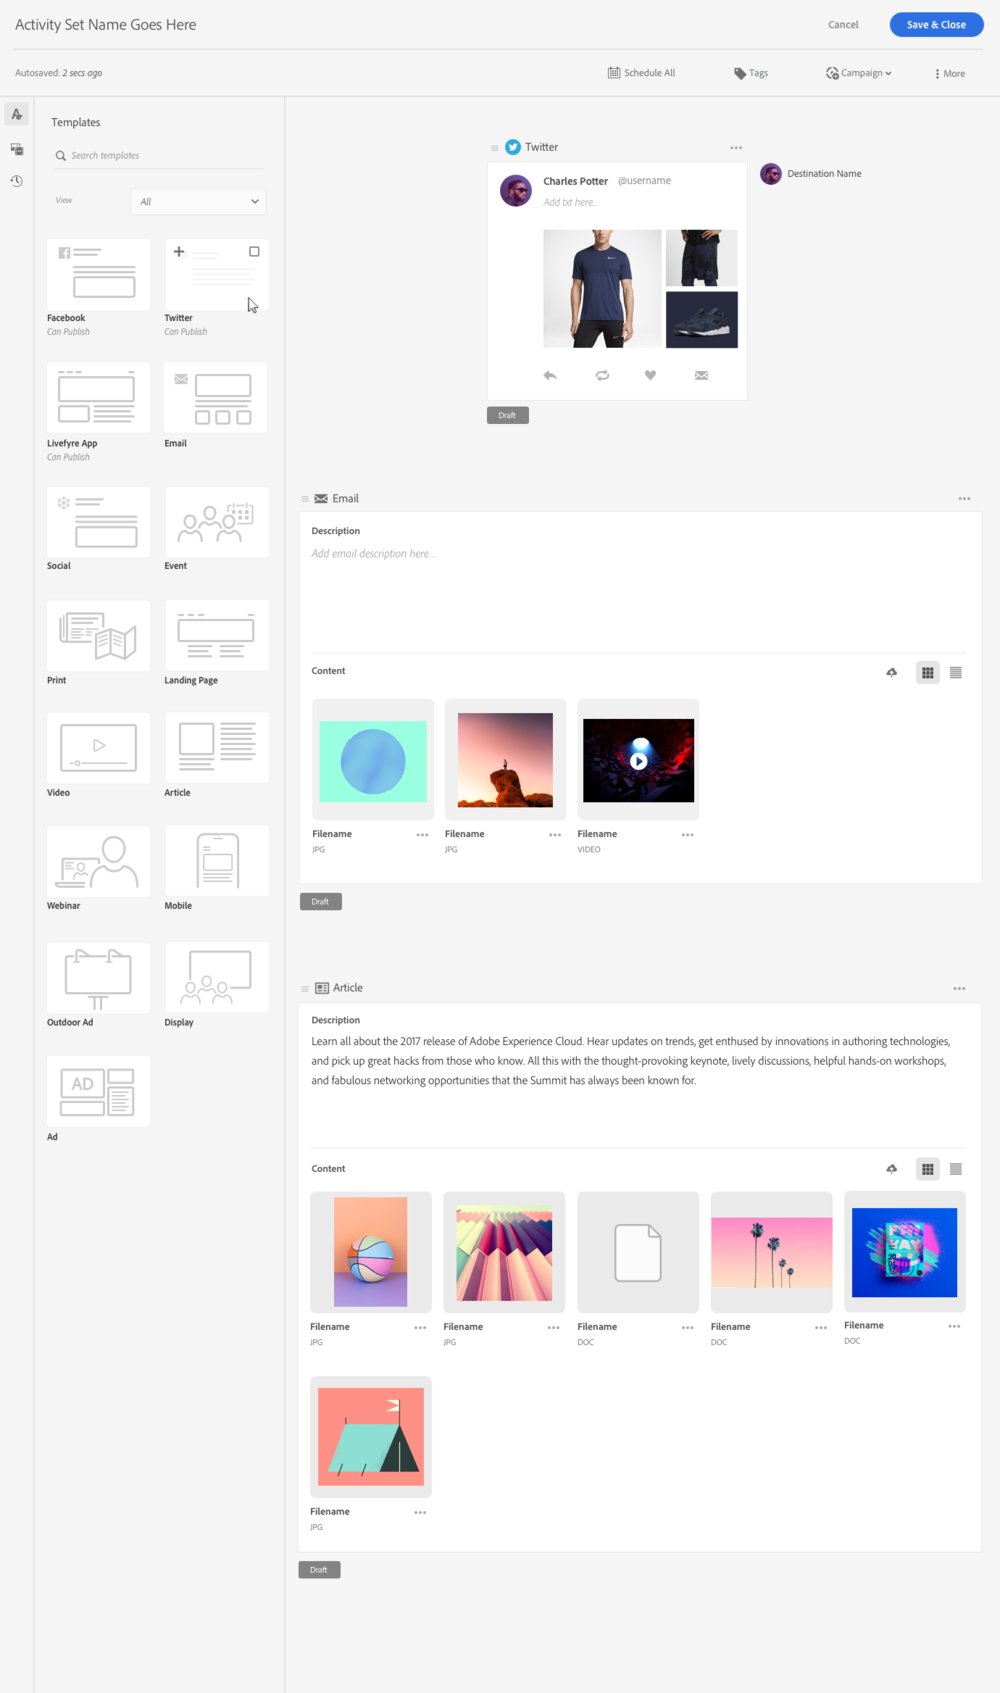 What Shipped 🚢 - The ability to edit emails was dropped along with the ability to schedule activities, except for Twitter due to engineering effort. They were planned to be added in V2.We also added other template types so users could create drafts of marketing activities that could be handed off to others and published from any other product they chose.